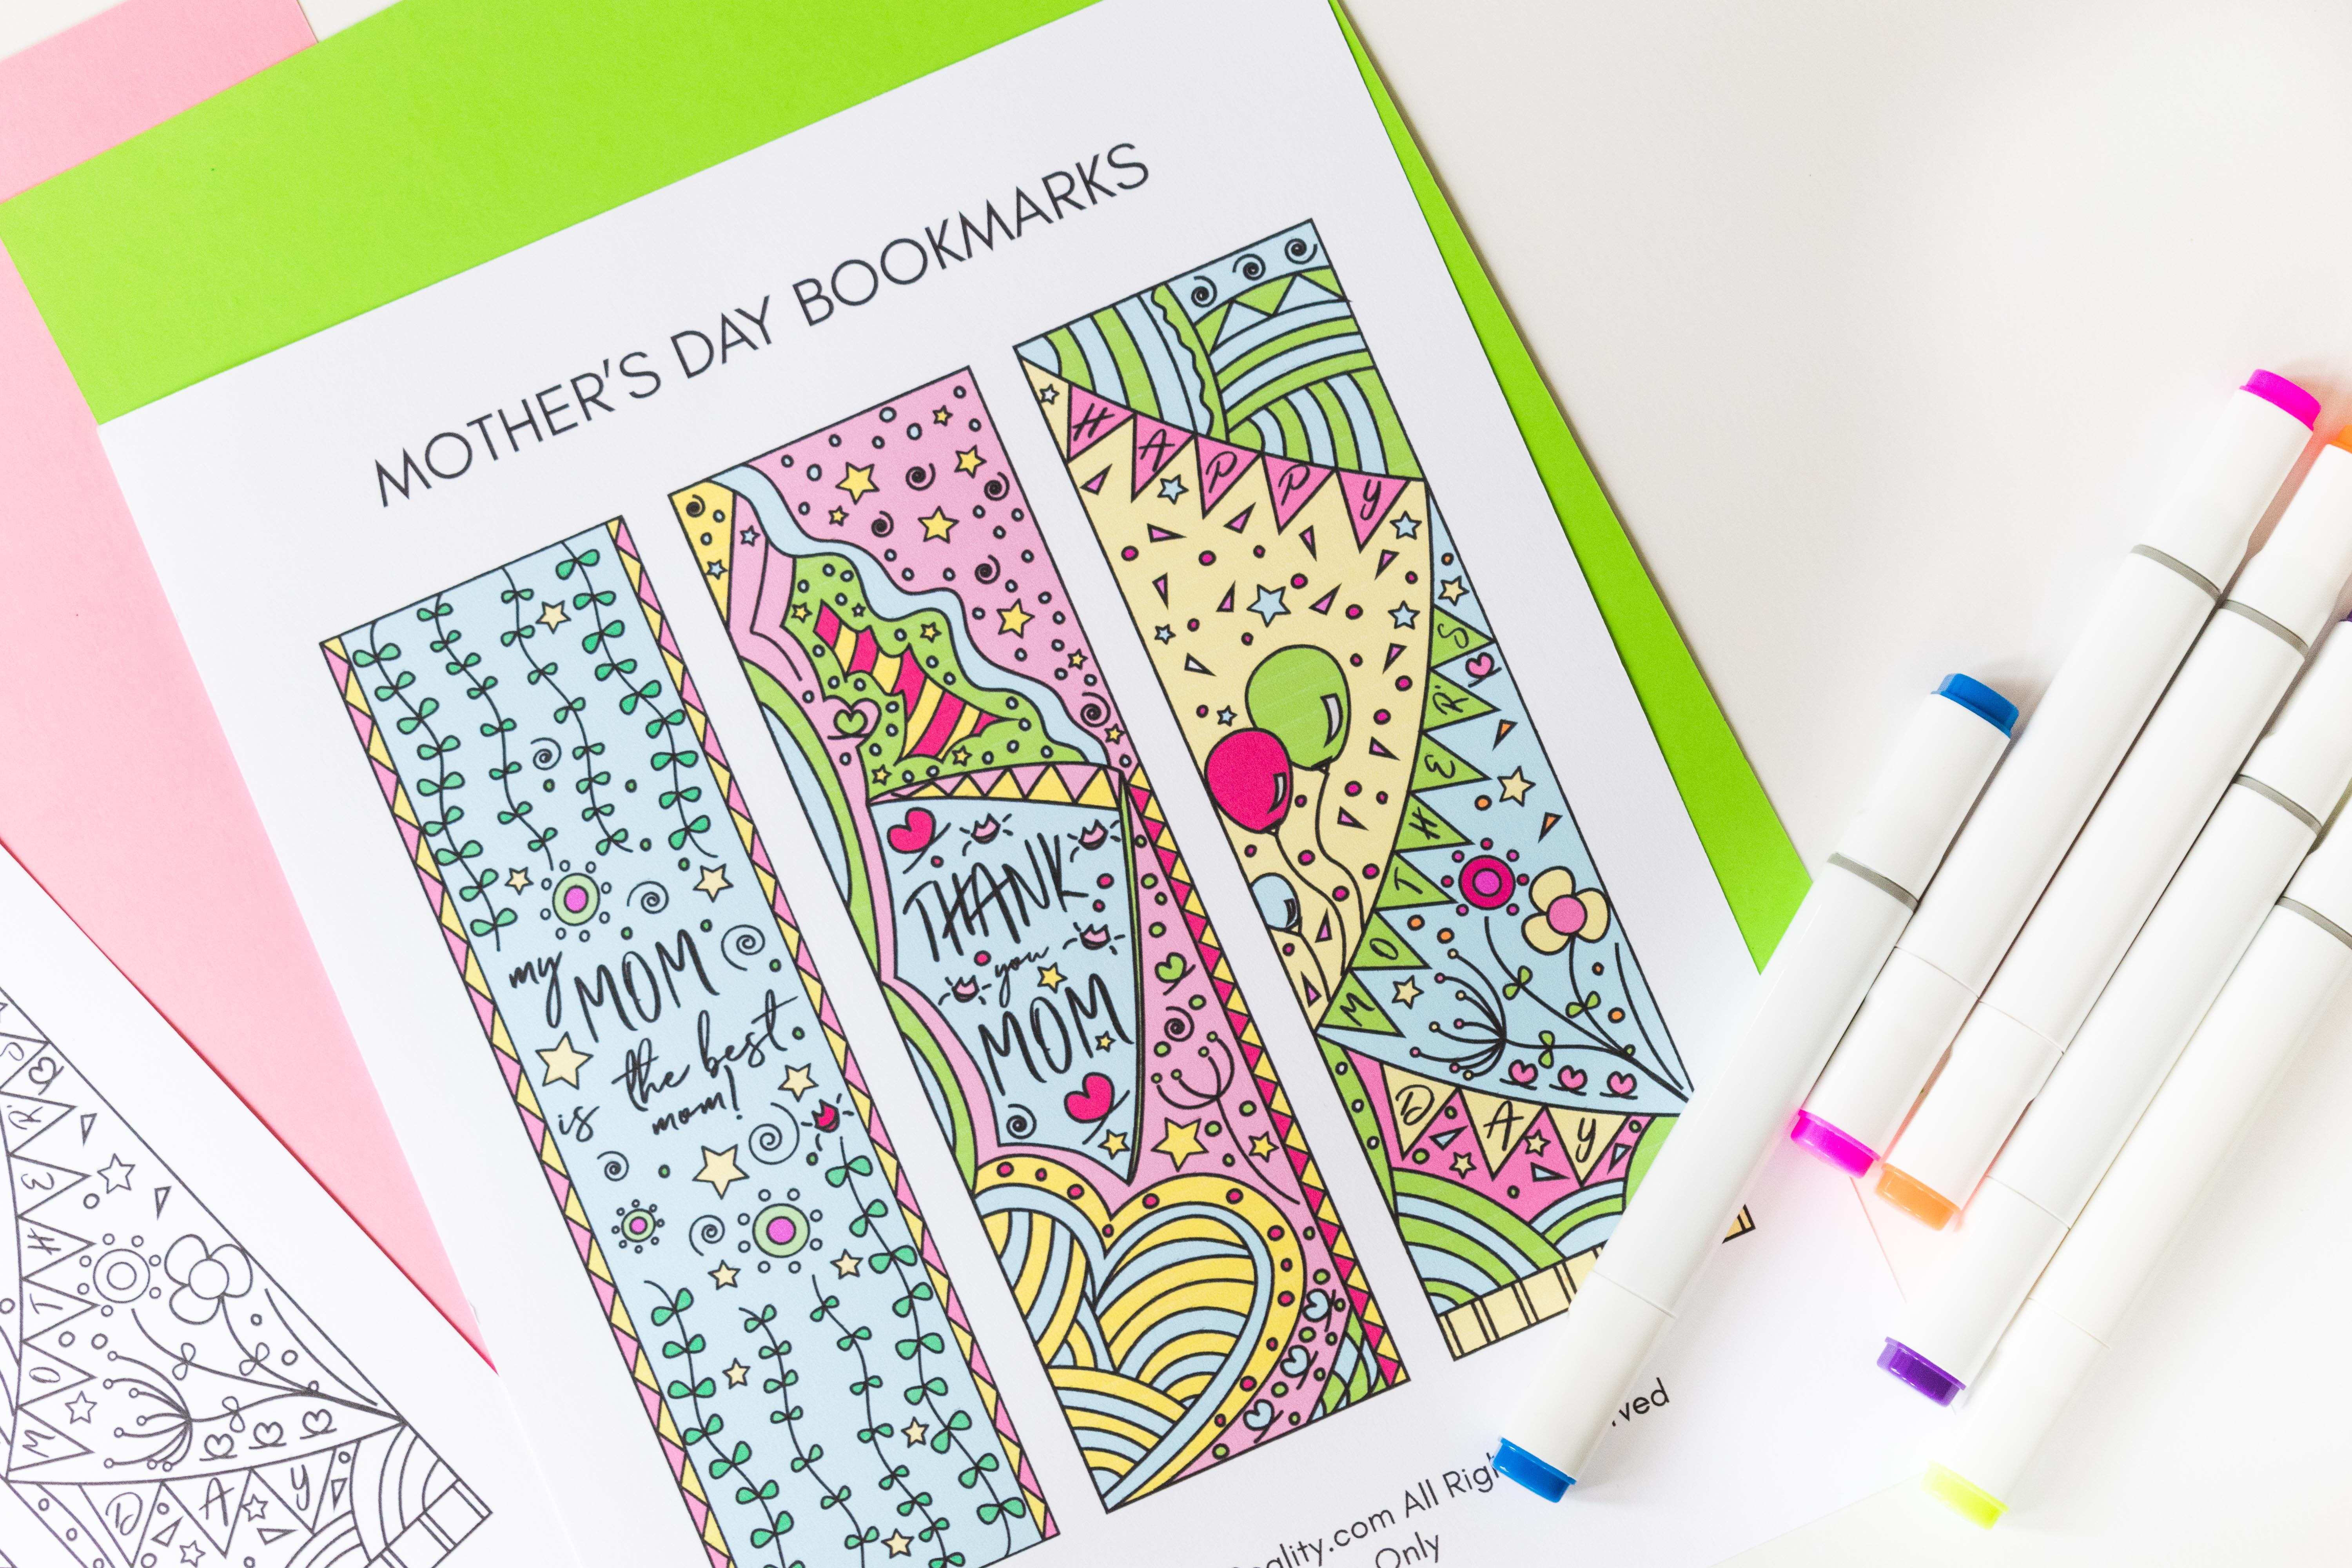 To celebrate this upcoming Mother's Day I designed these beautiful Coloring Mother's Day Bookmarks. Print them out, color them, and give them away to your mom, or any mom you know. Oh! and If you're one, don't forget to keep one for yourself.